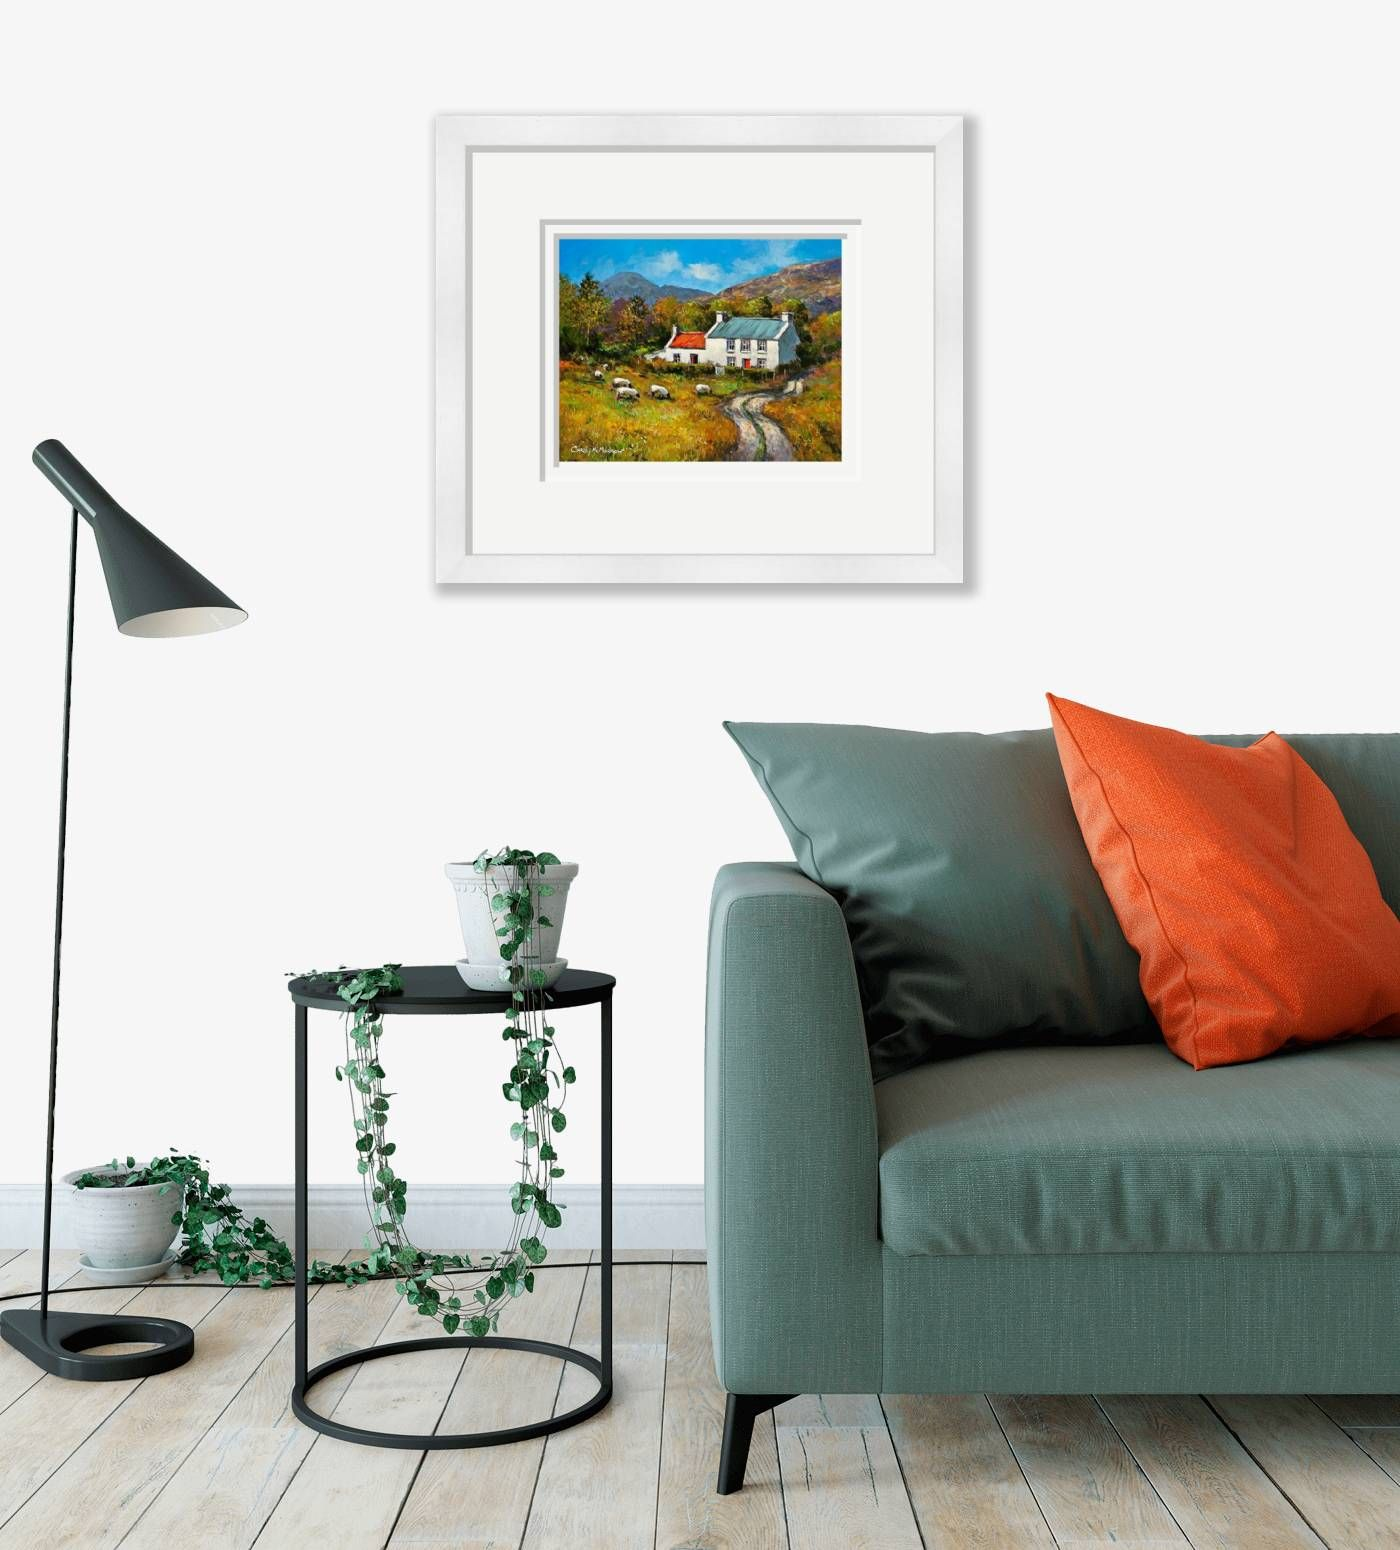 Large framed - Cottage in the Valley -  516 by Chris McMorrow